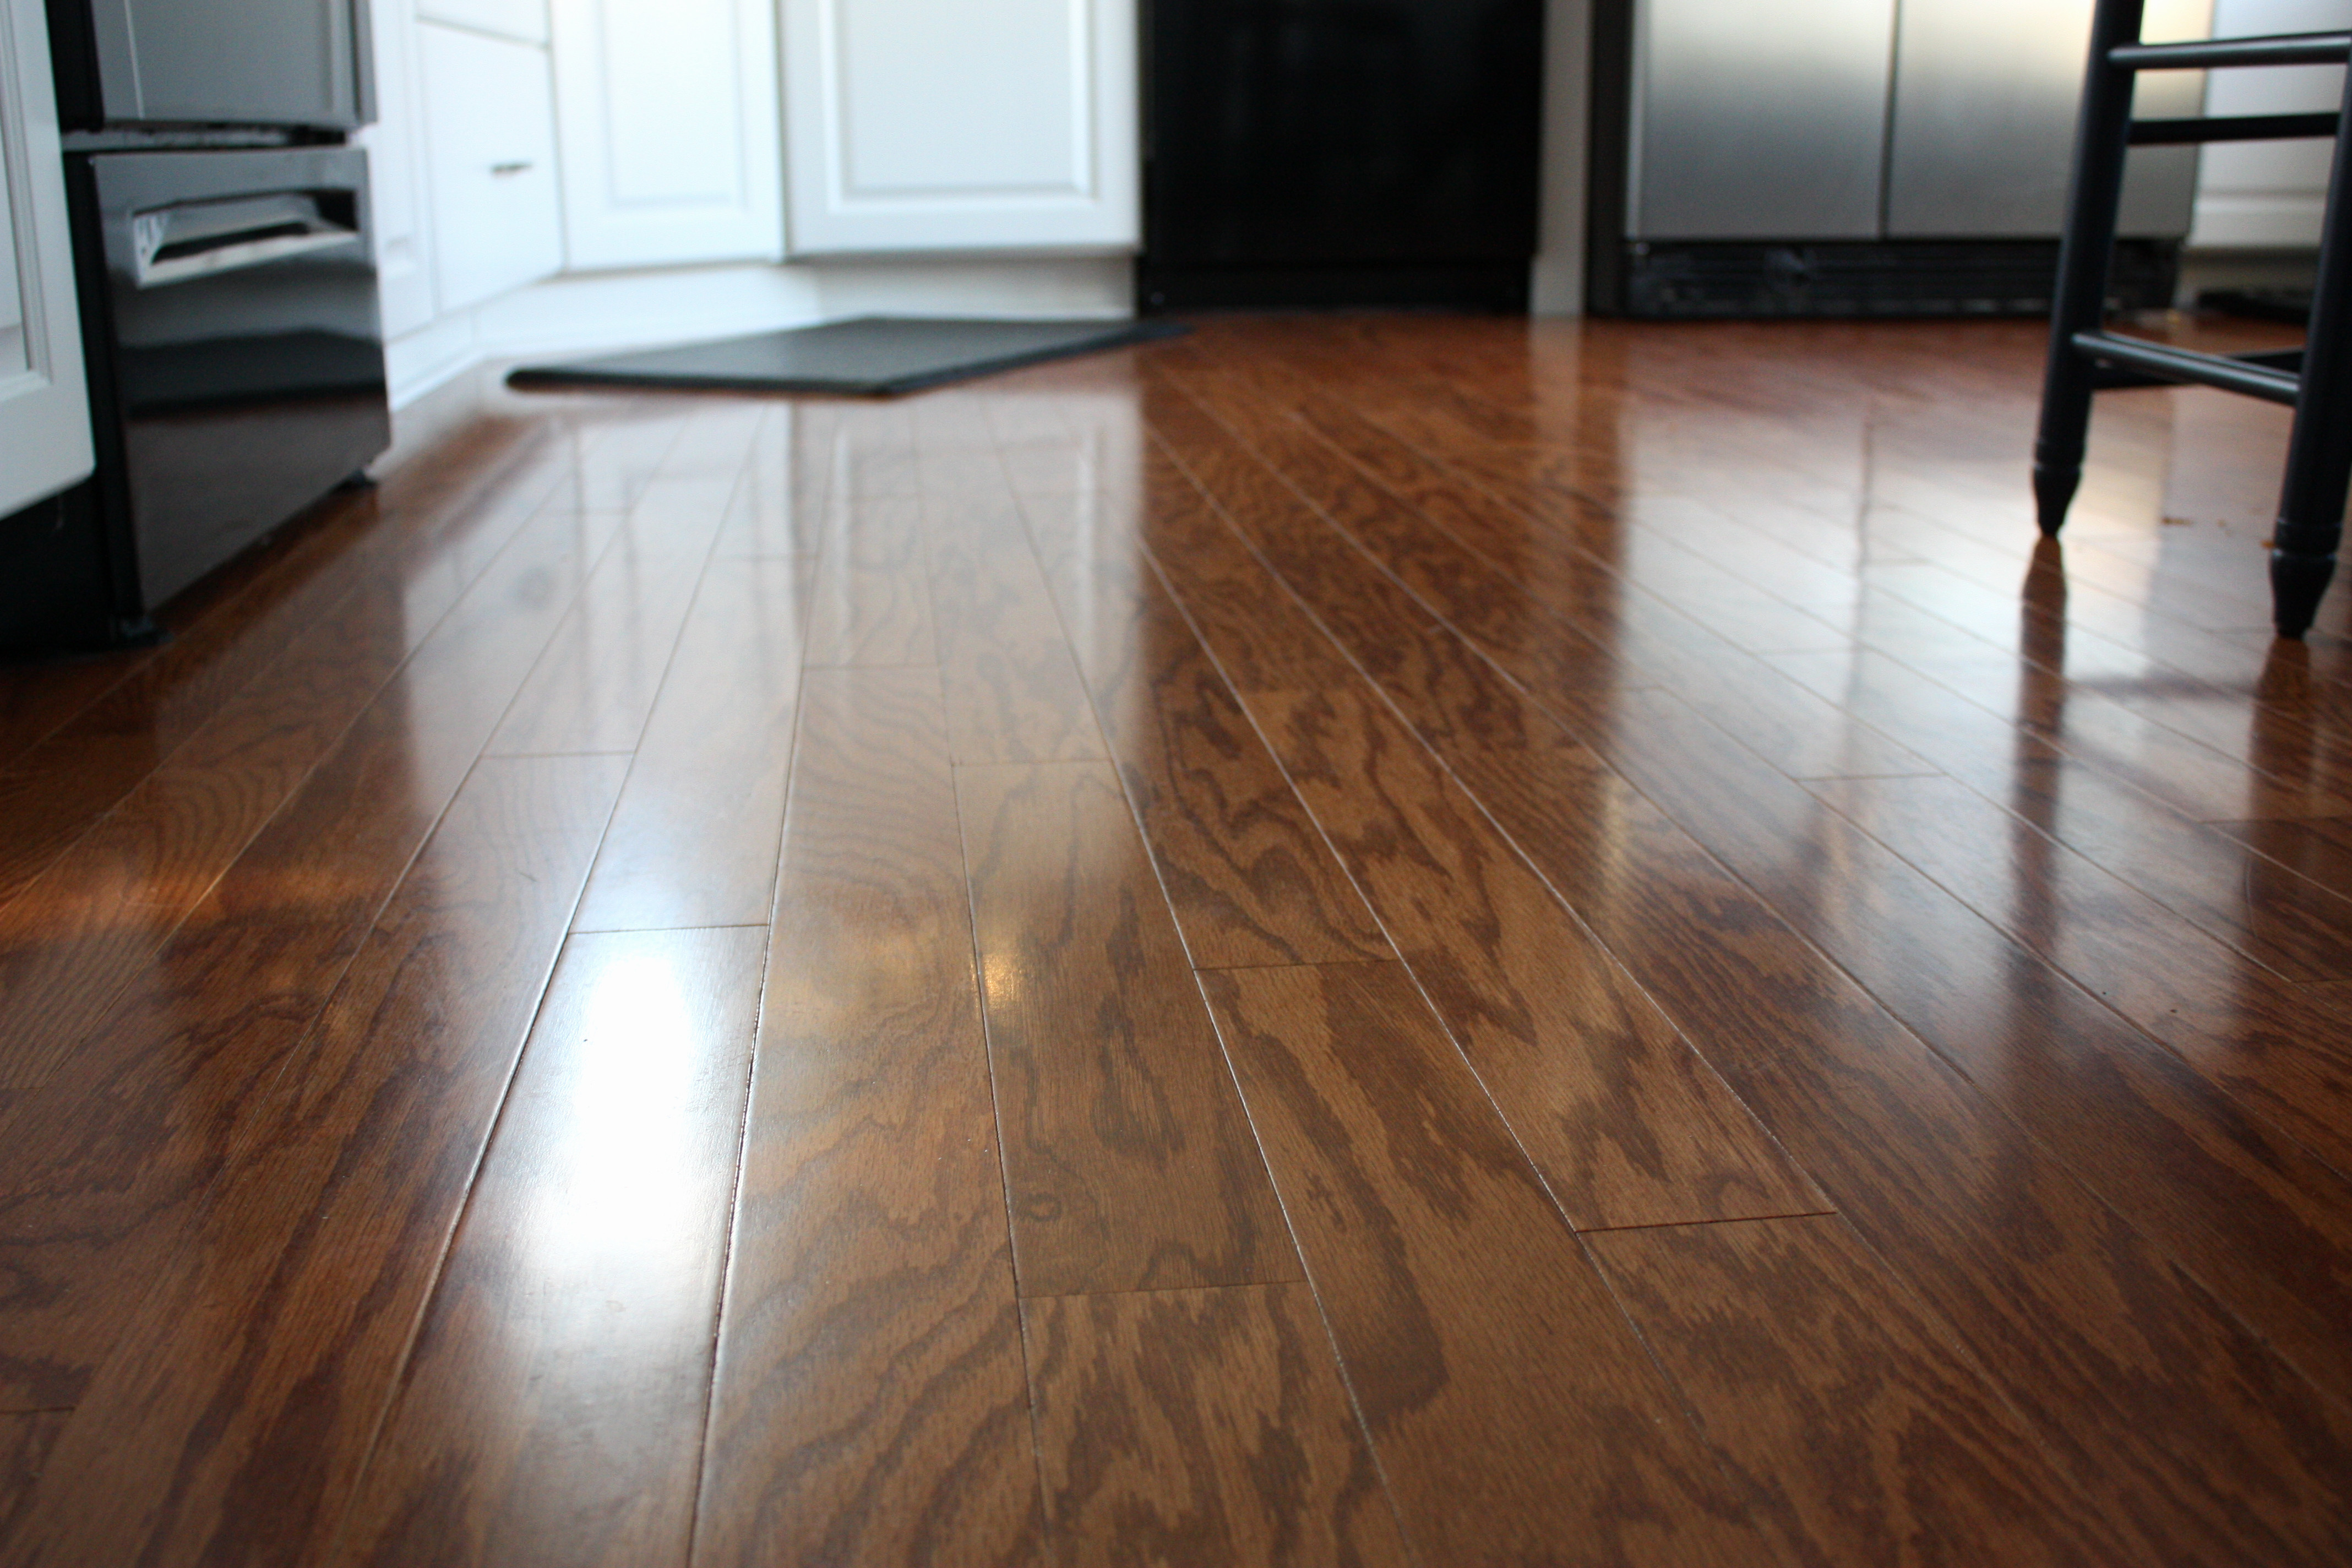 cheap hardwood floor installation of the wood maker page 6 wood wallpaper with regard to floor floorod cleaning hardwood carpet lake forest il rare image ideas of wood floor steam cleaner